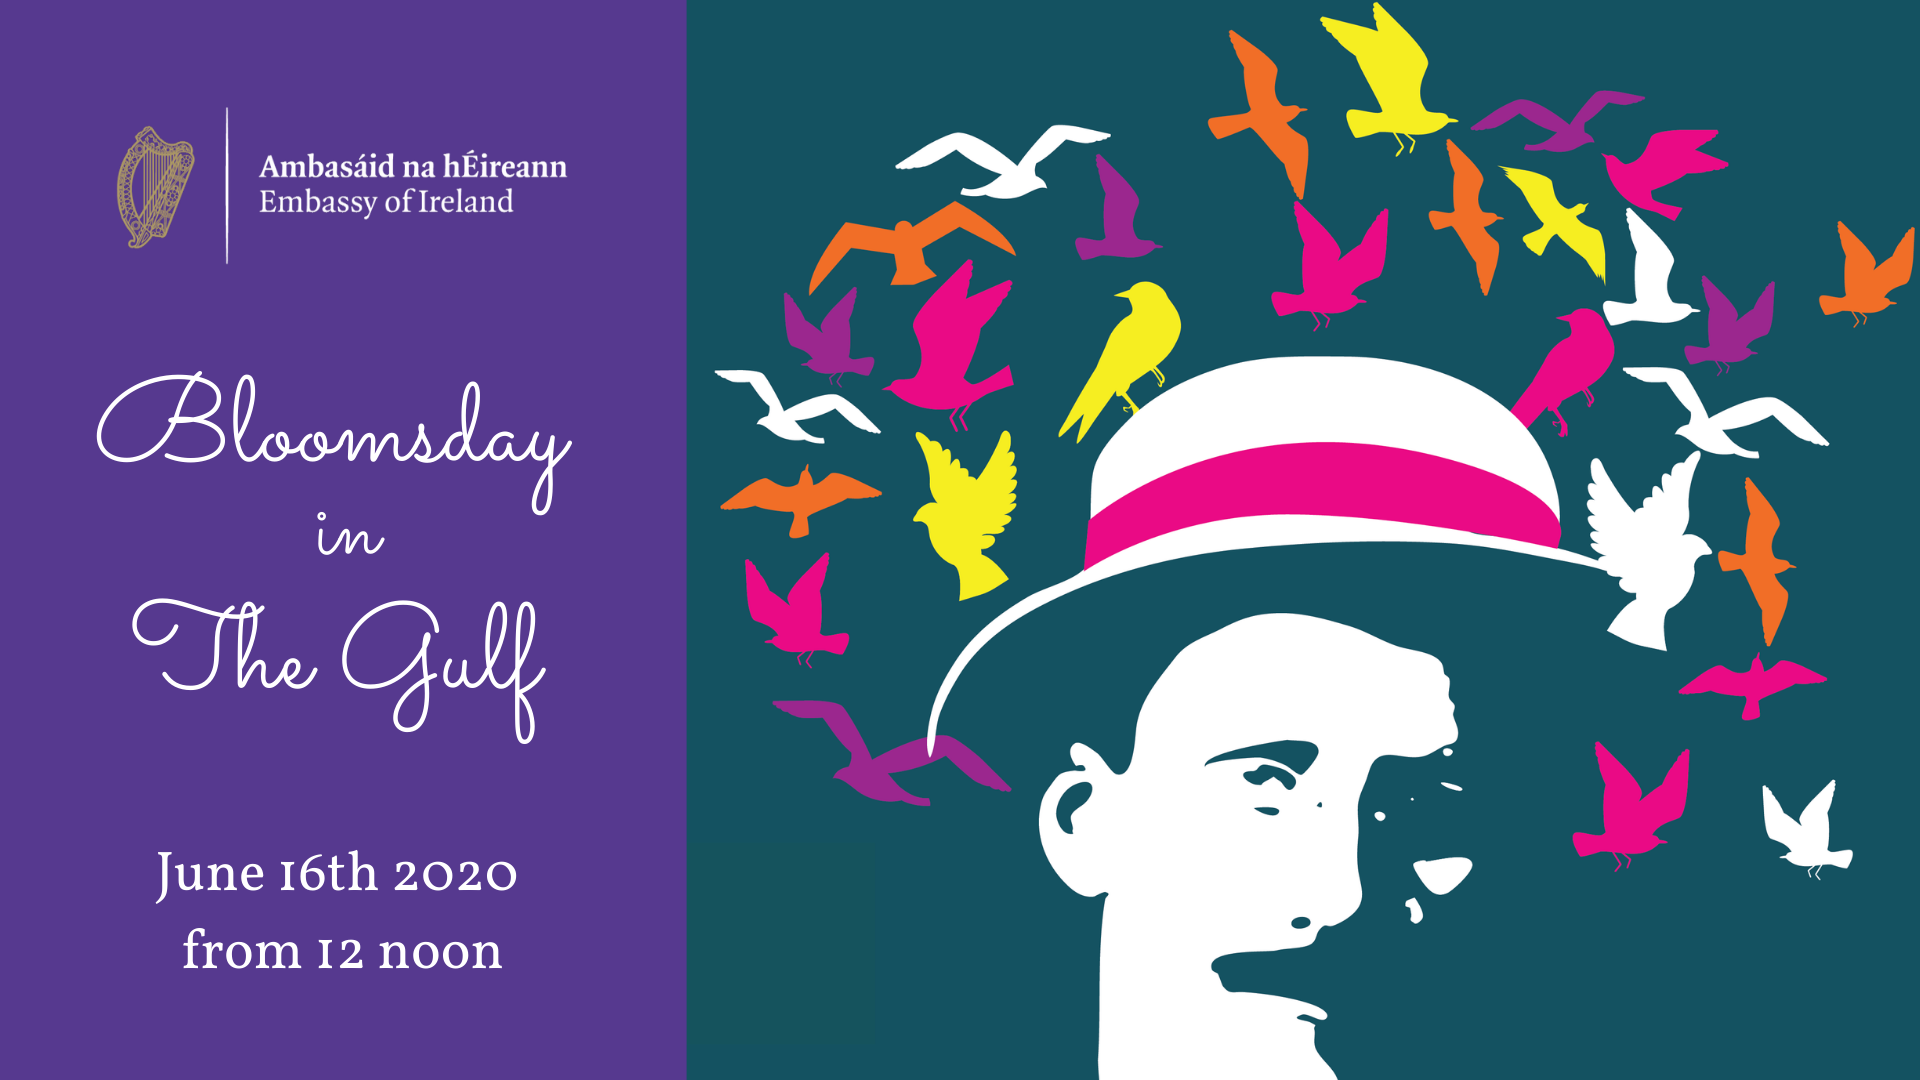 Bloomsday in The Gulf 2020